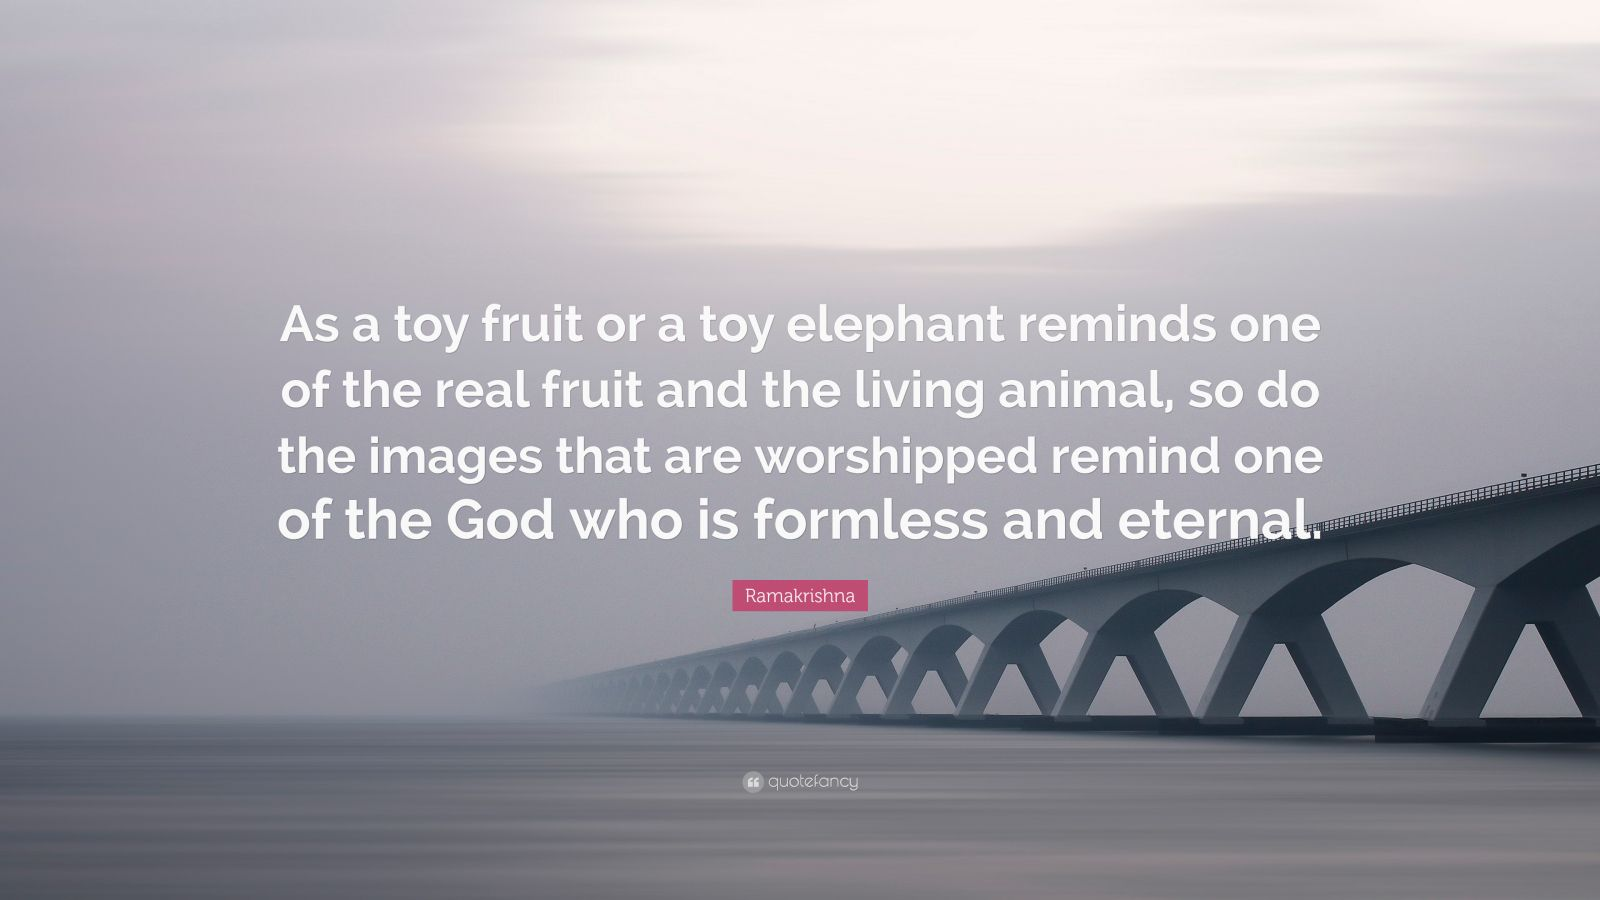 """Ramakrishna Quote: """"As a toy fruit or a toy elephant reminds one of the real fruit and the living animal, so do the images that are worshipped remind one of the God who is formless and eternal."""""""